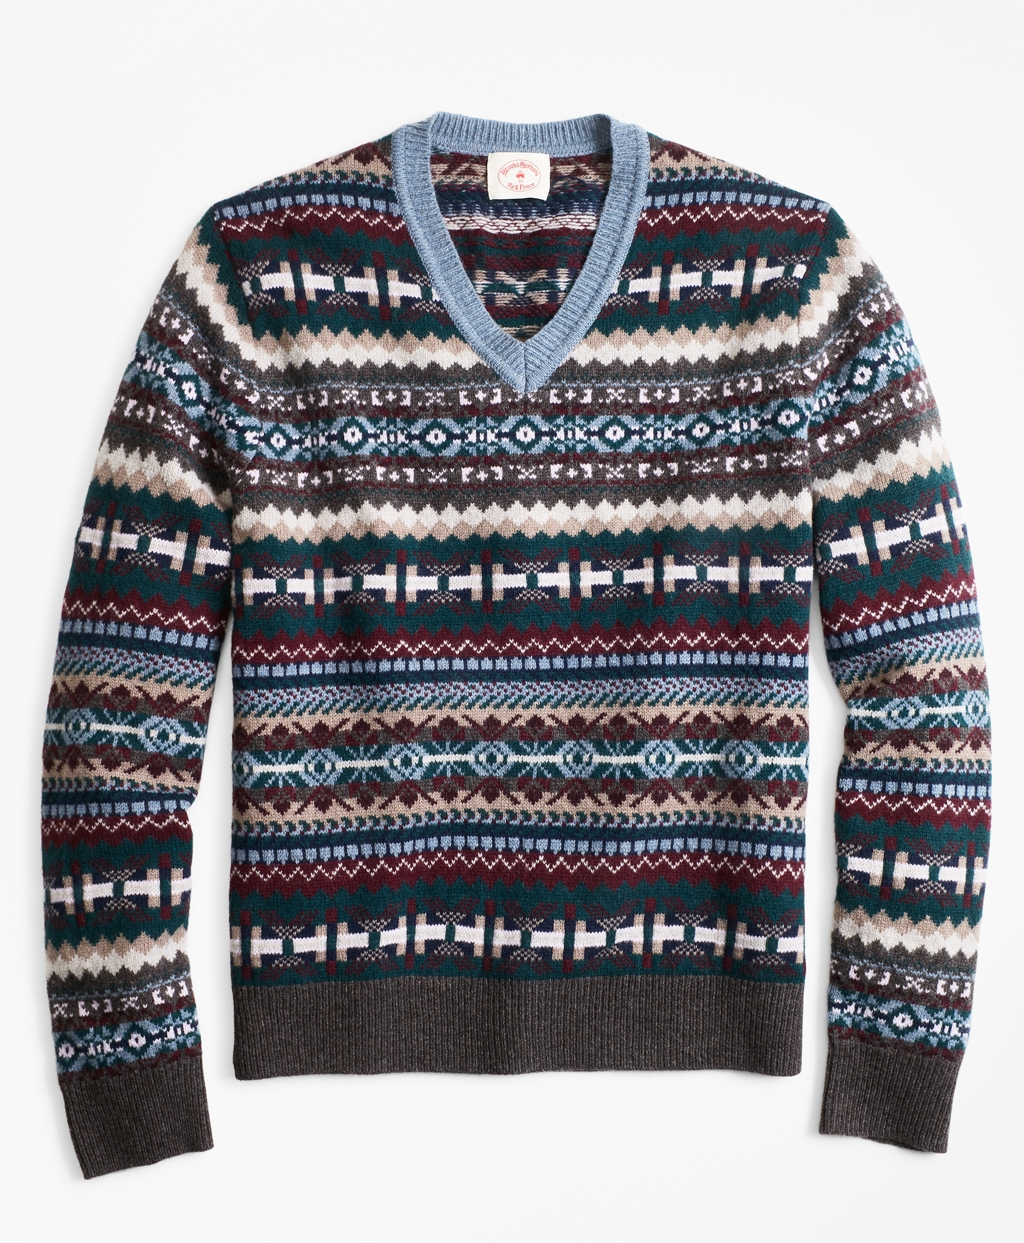 1920s Mens Sweaters, Pullovers, Cardigans Brooks Brothers Mens Fair Isle Wool-Blend V-Neck Sweater $49.25 AT vintagedancer.com